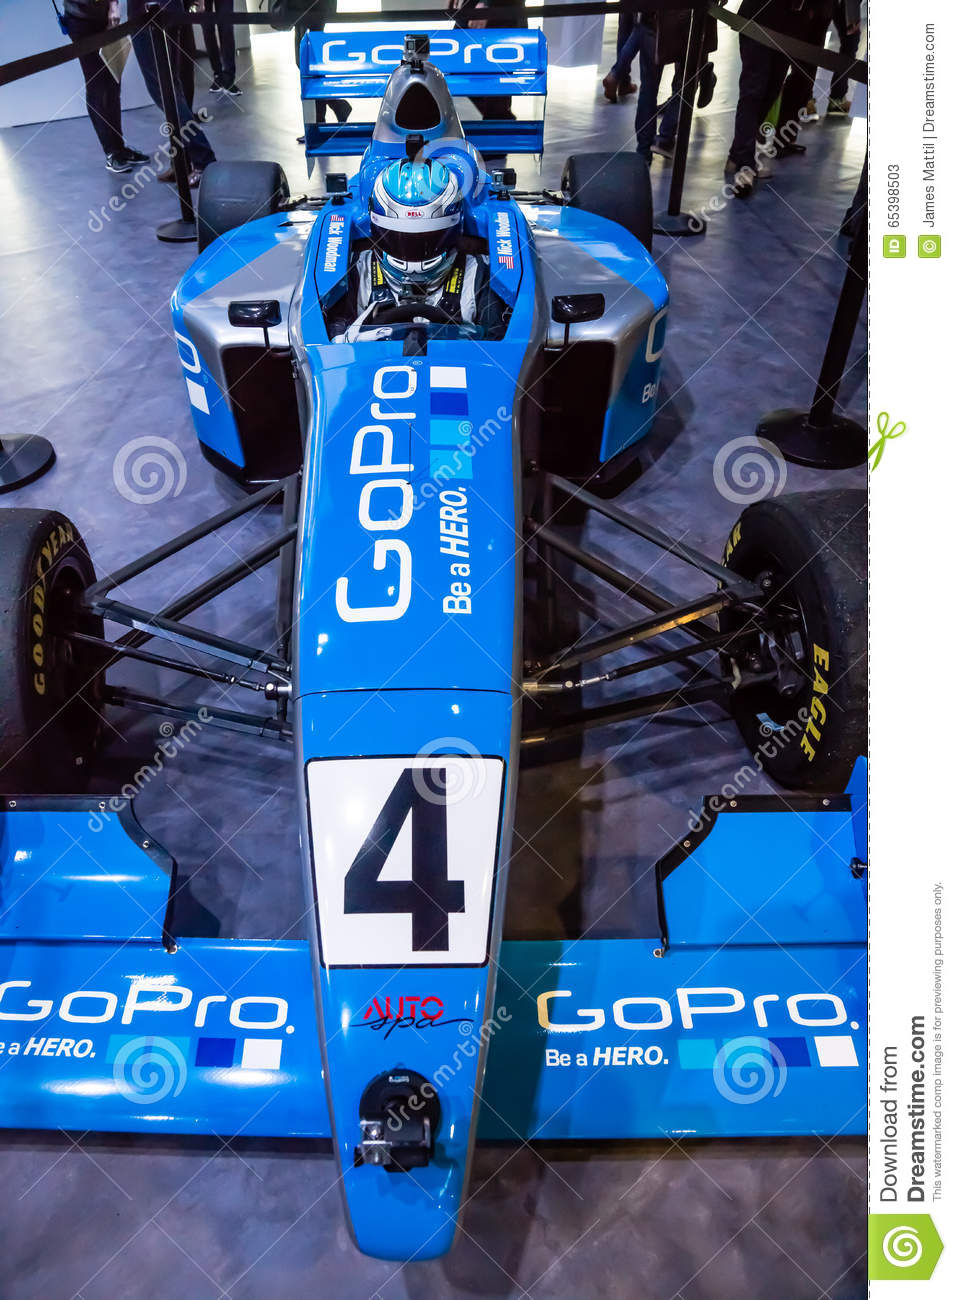 GoPro Race Car at CES editorial stock photo  Image of futuristic